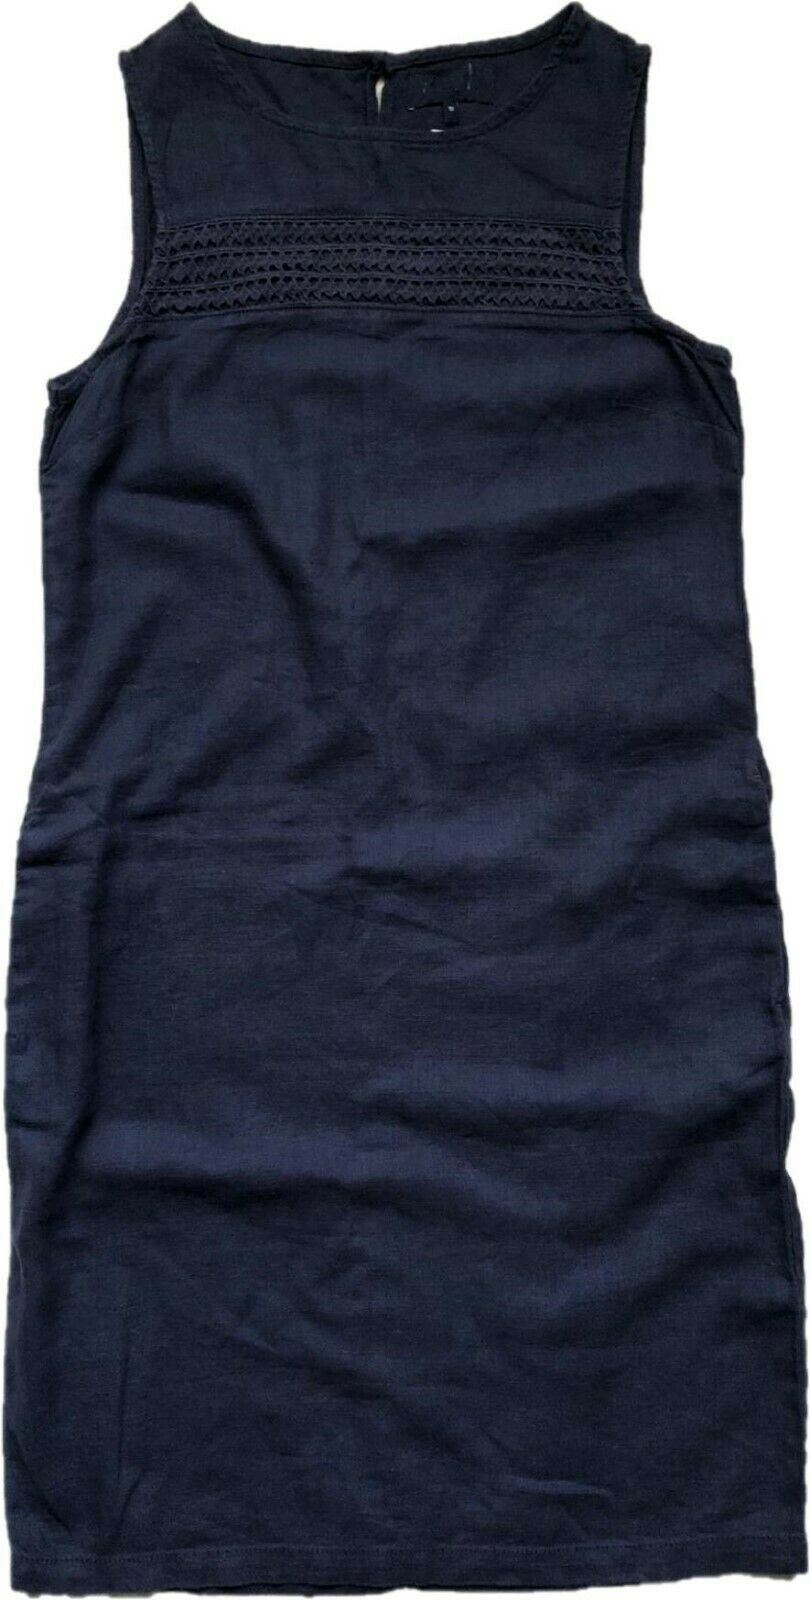 BN NEXT LADIES LINEN BLEND NAVY SUMMER BEACH SHIFT DRESS TUNIC SIZE 6/20 £18.99